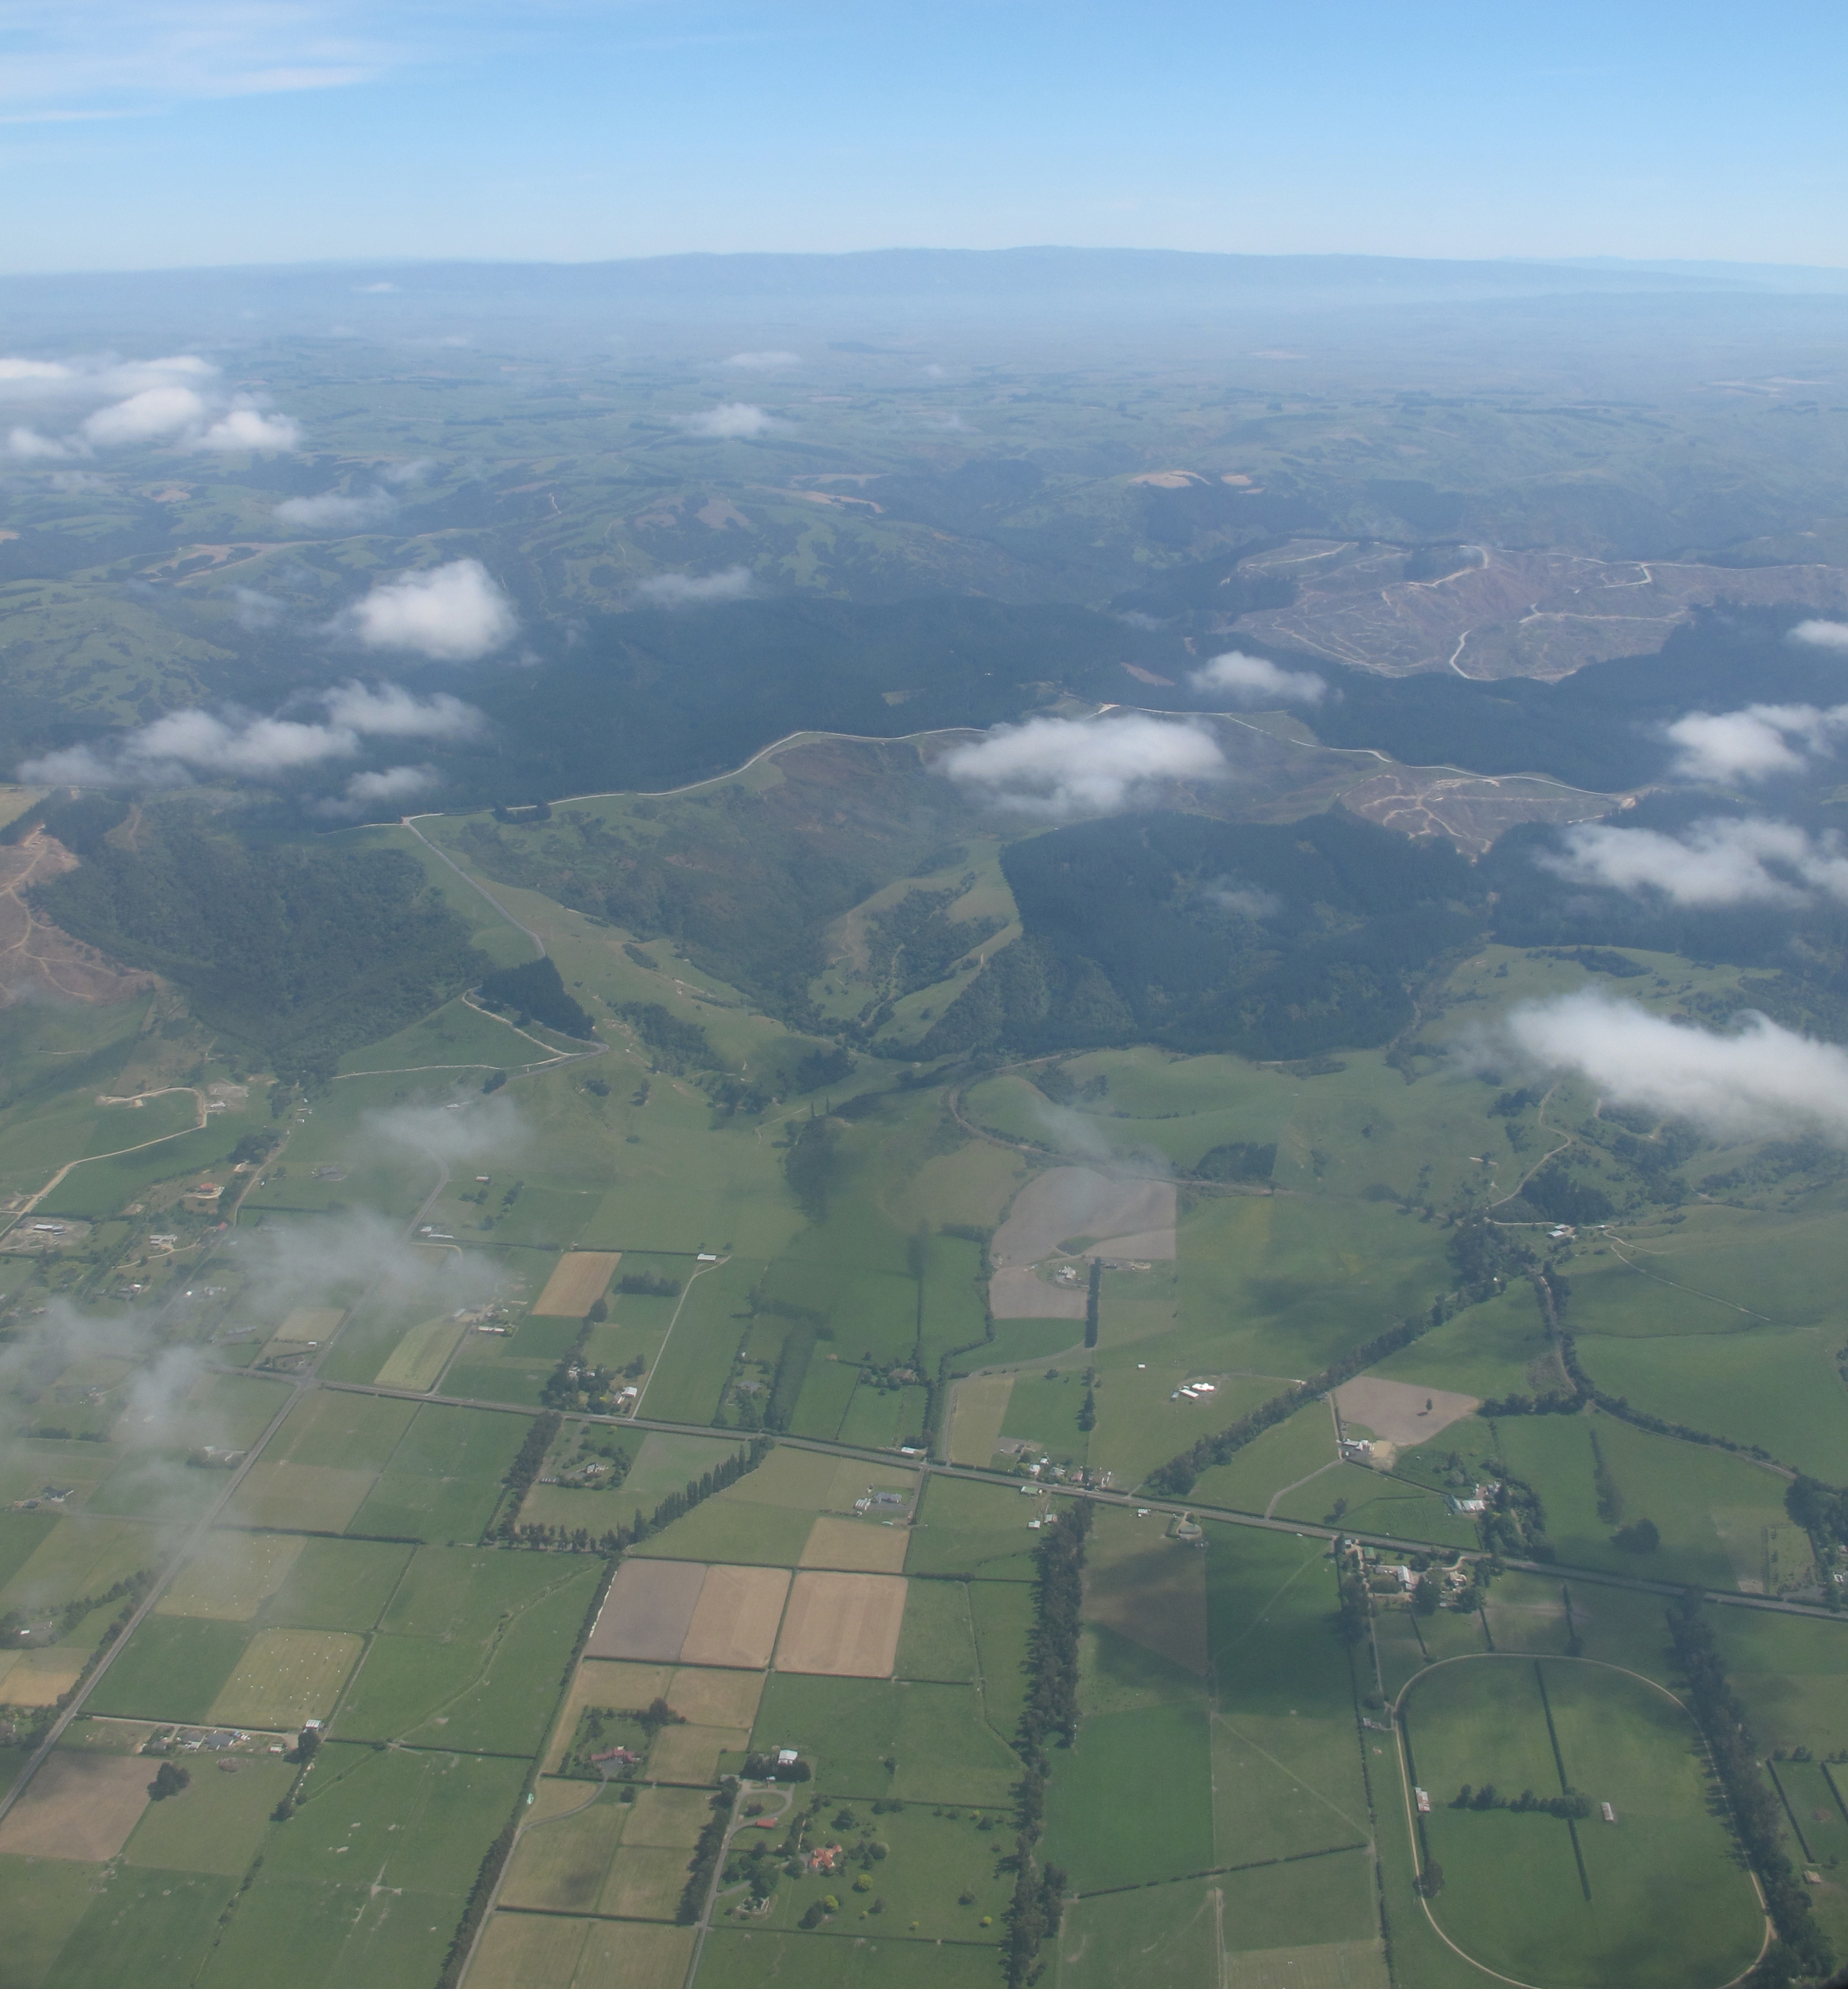 New Zealand fields and green hills from above